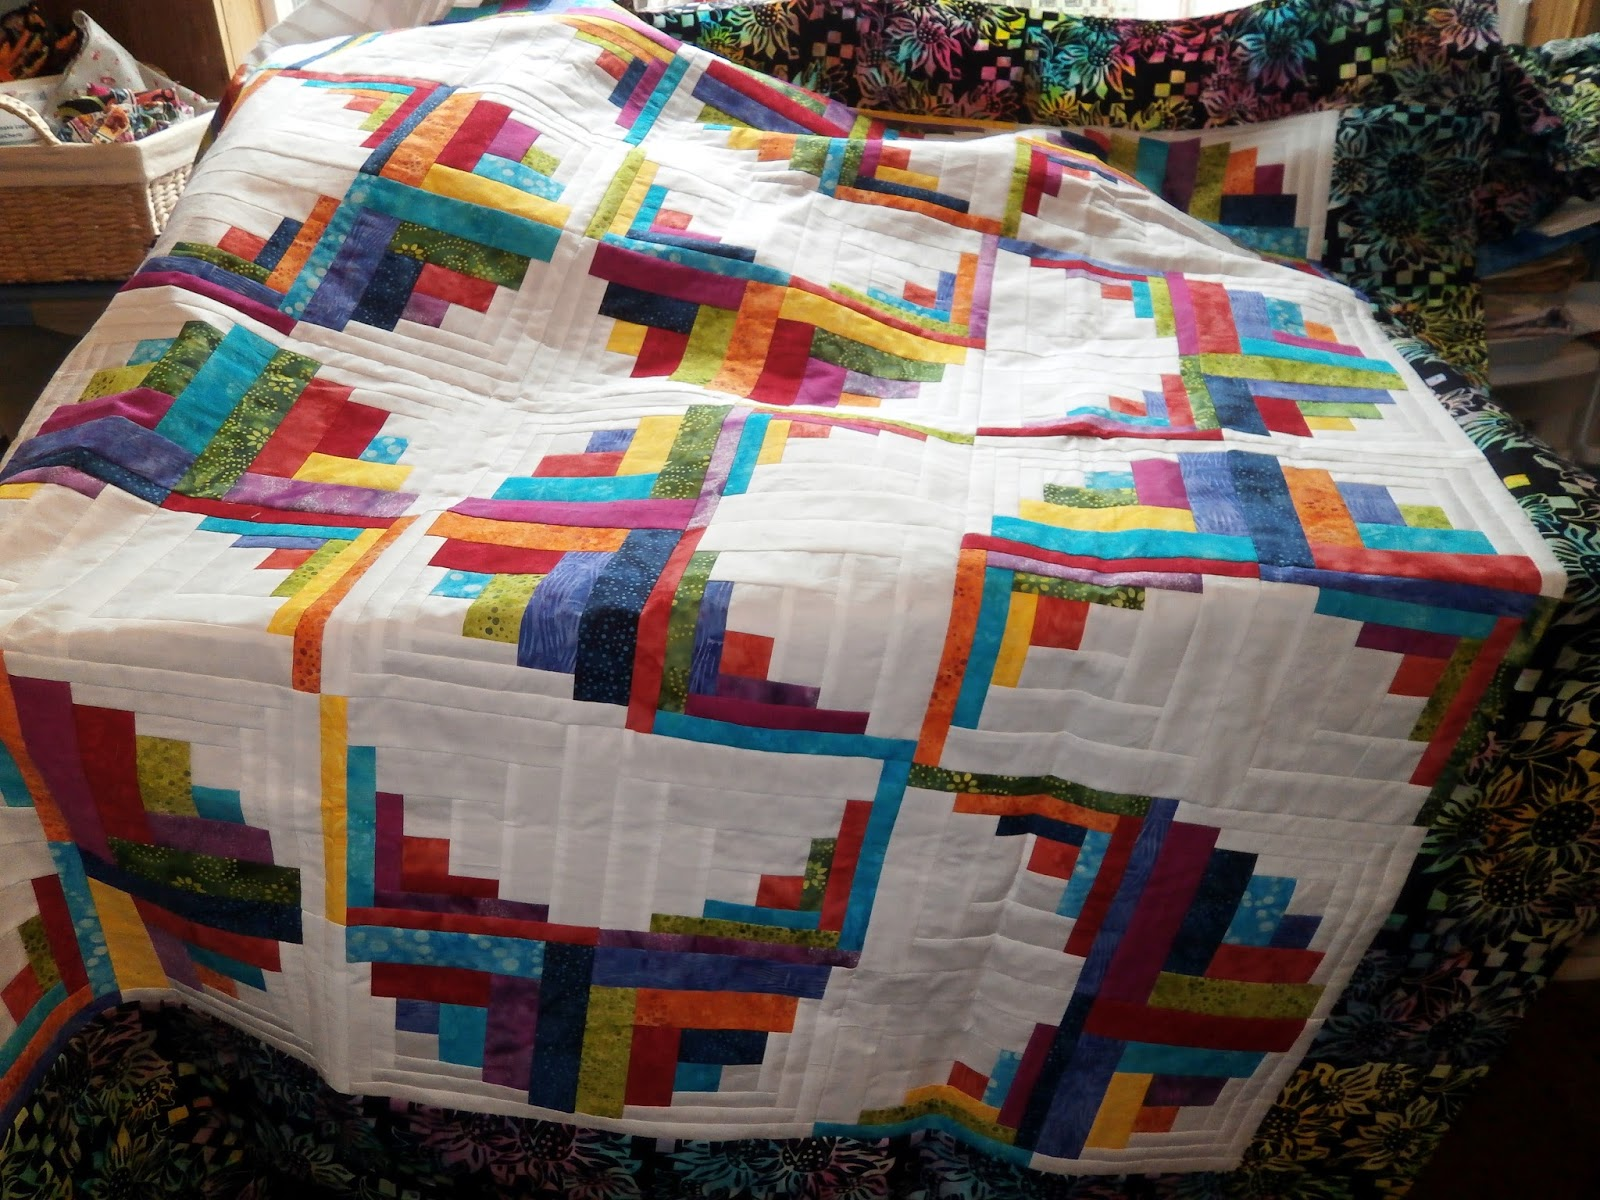 images best small cabin quilt progress pinterest blairwisecraft quilts log cabins mini in on